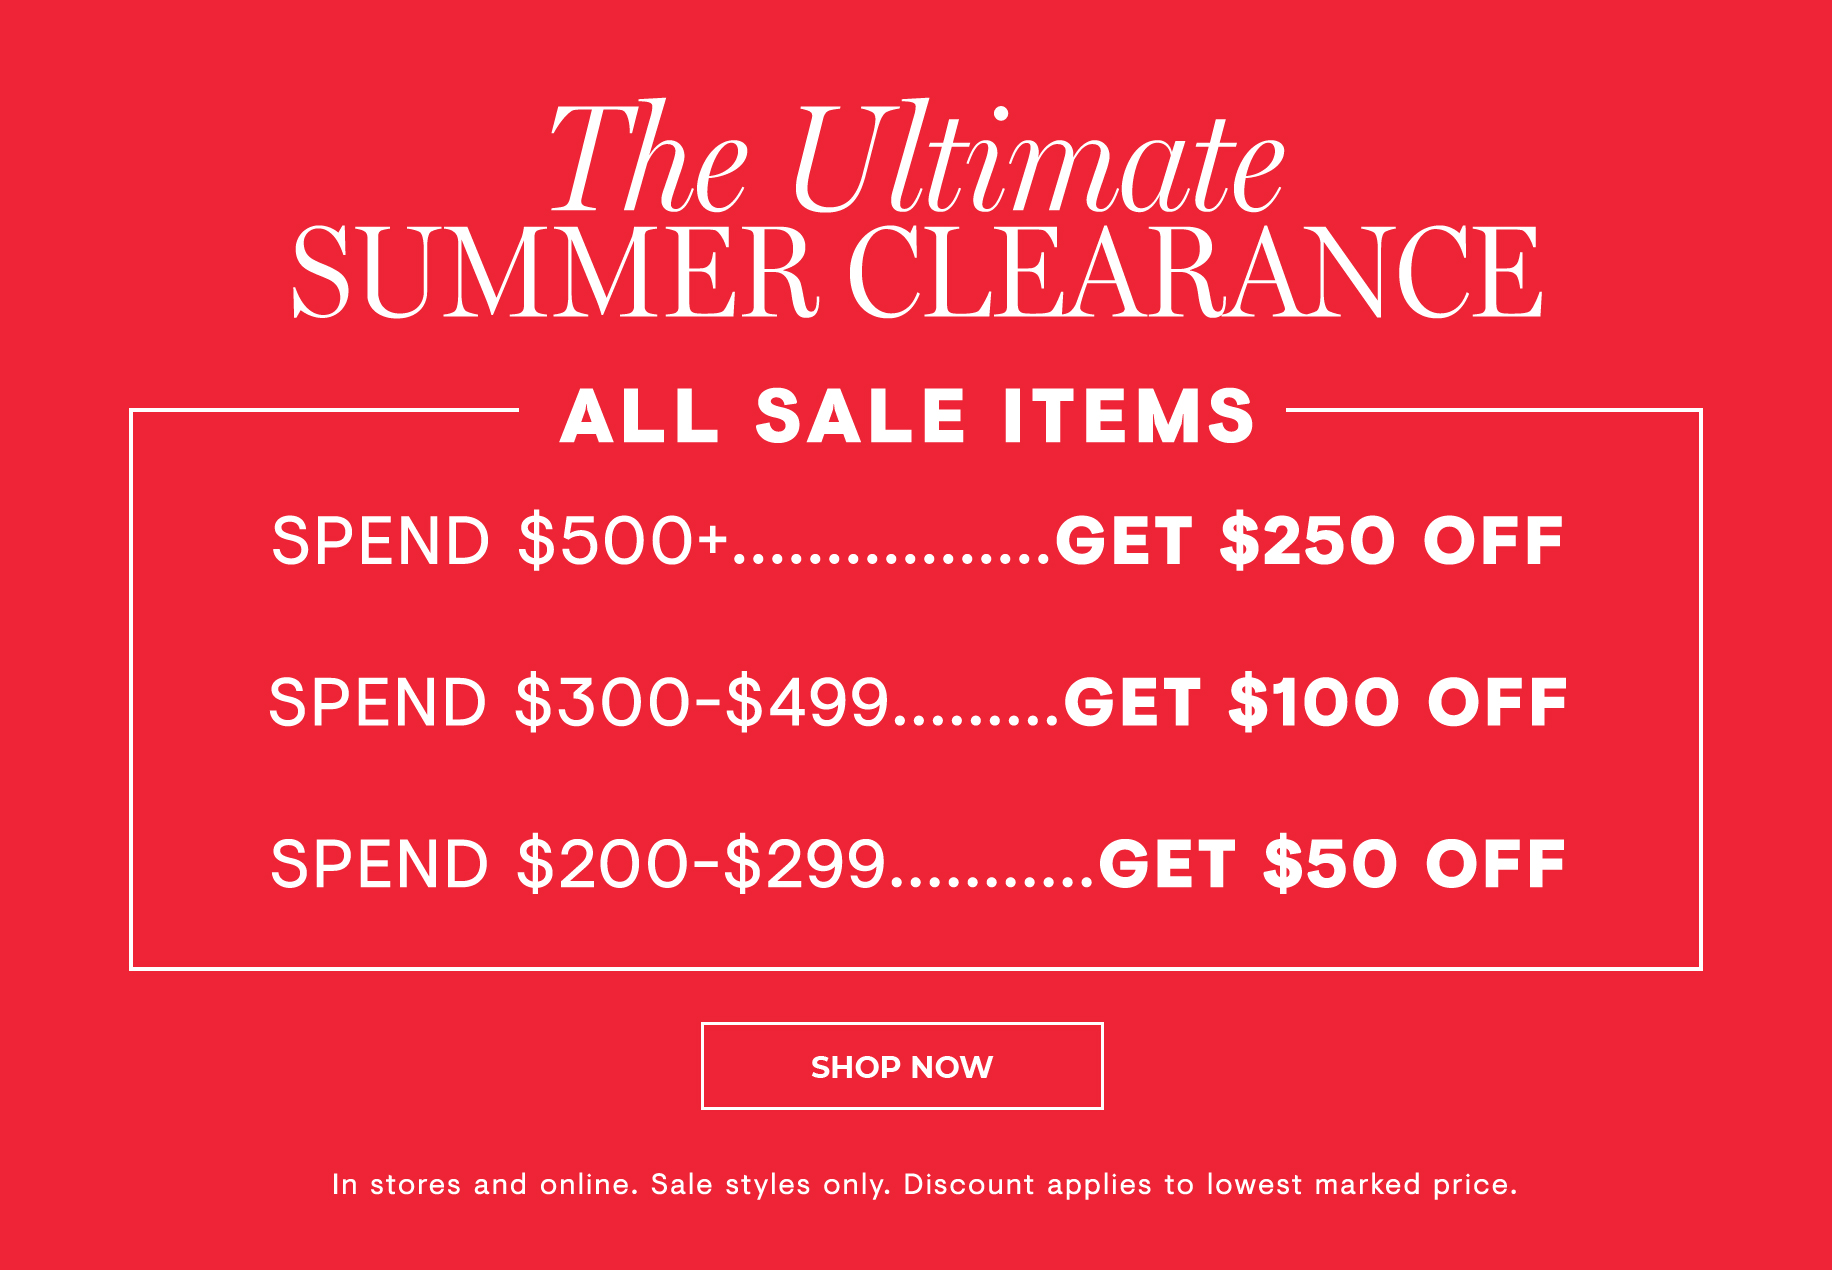 The Ultimate Summer Clearance